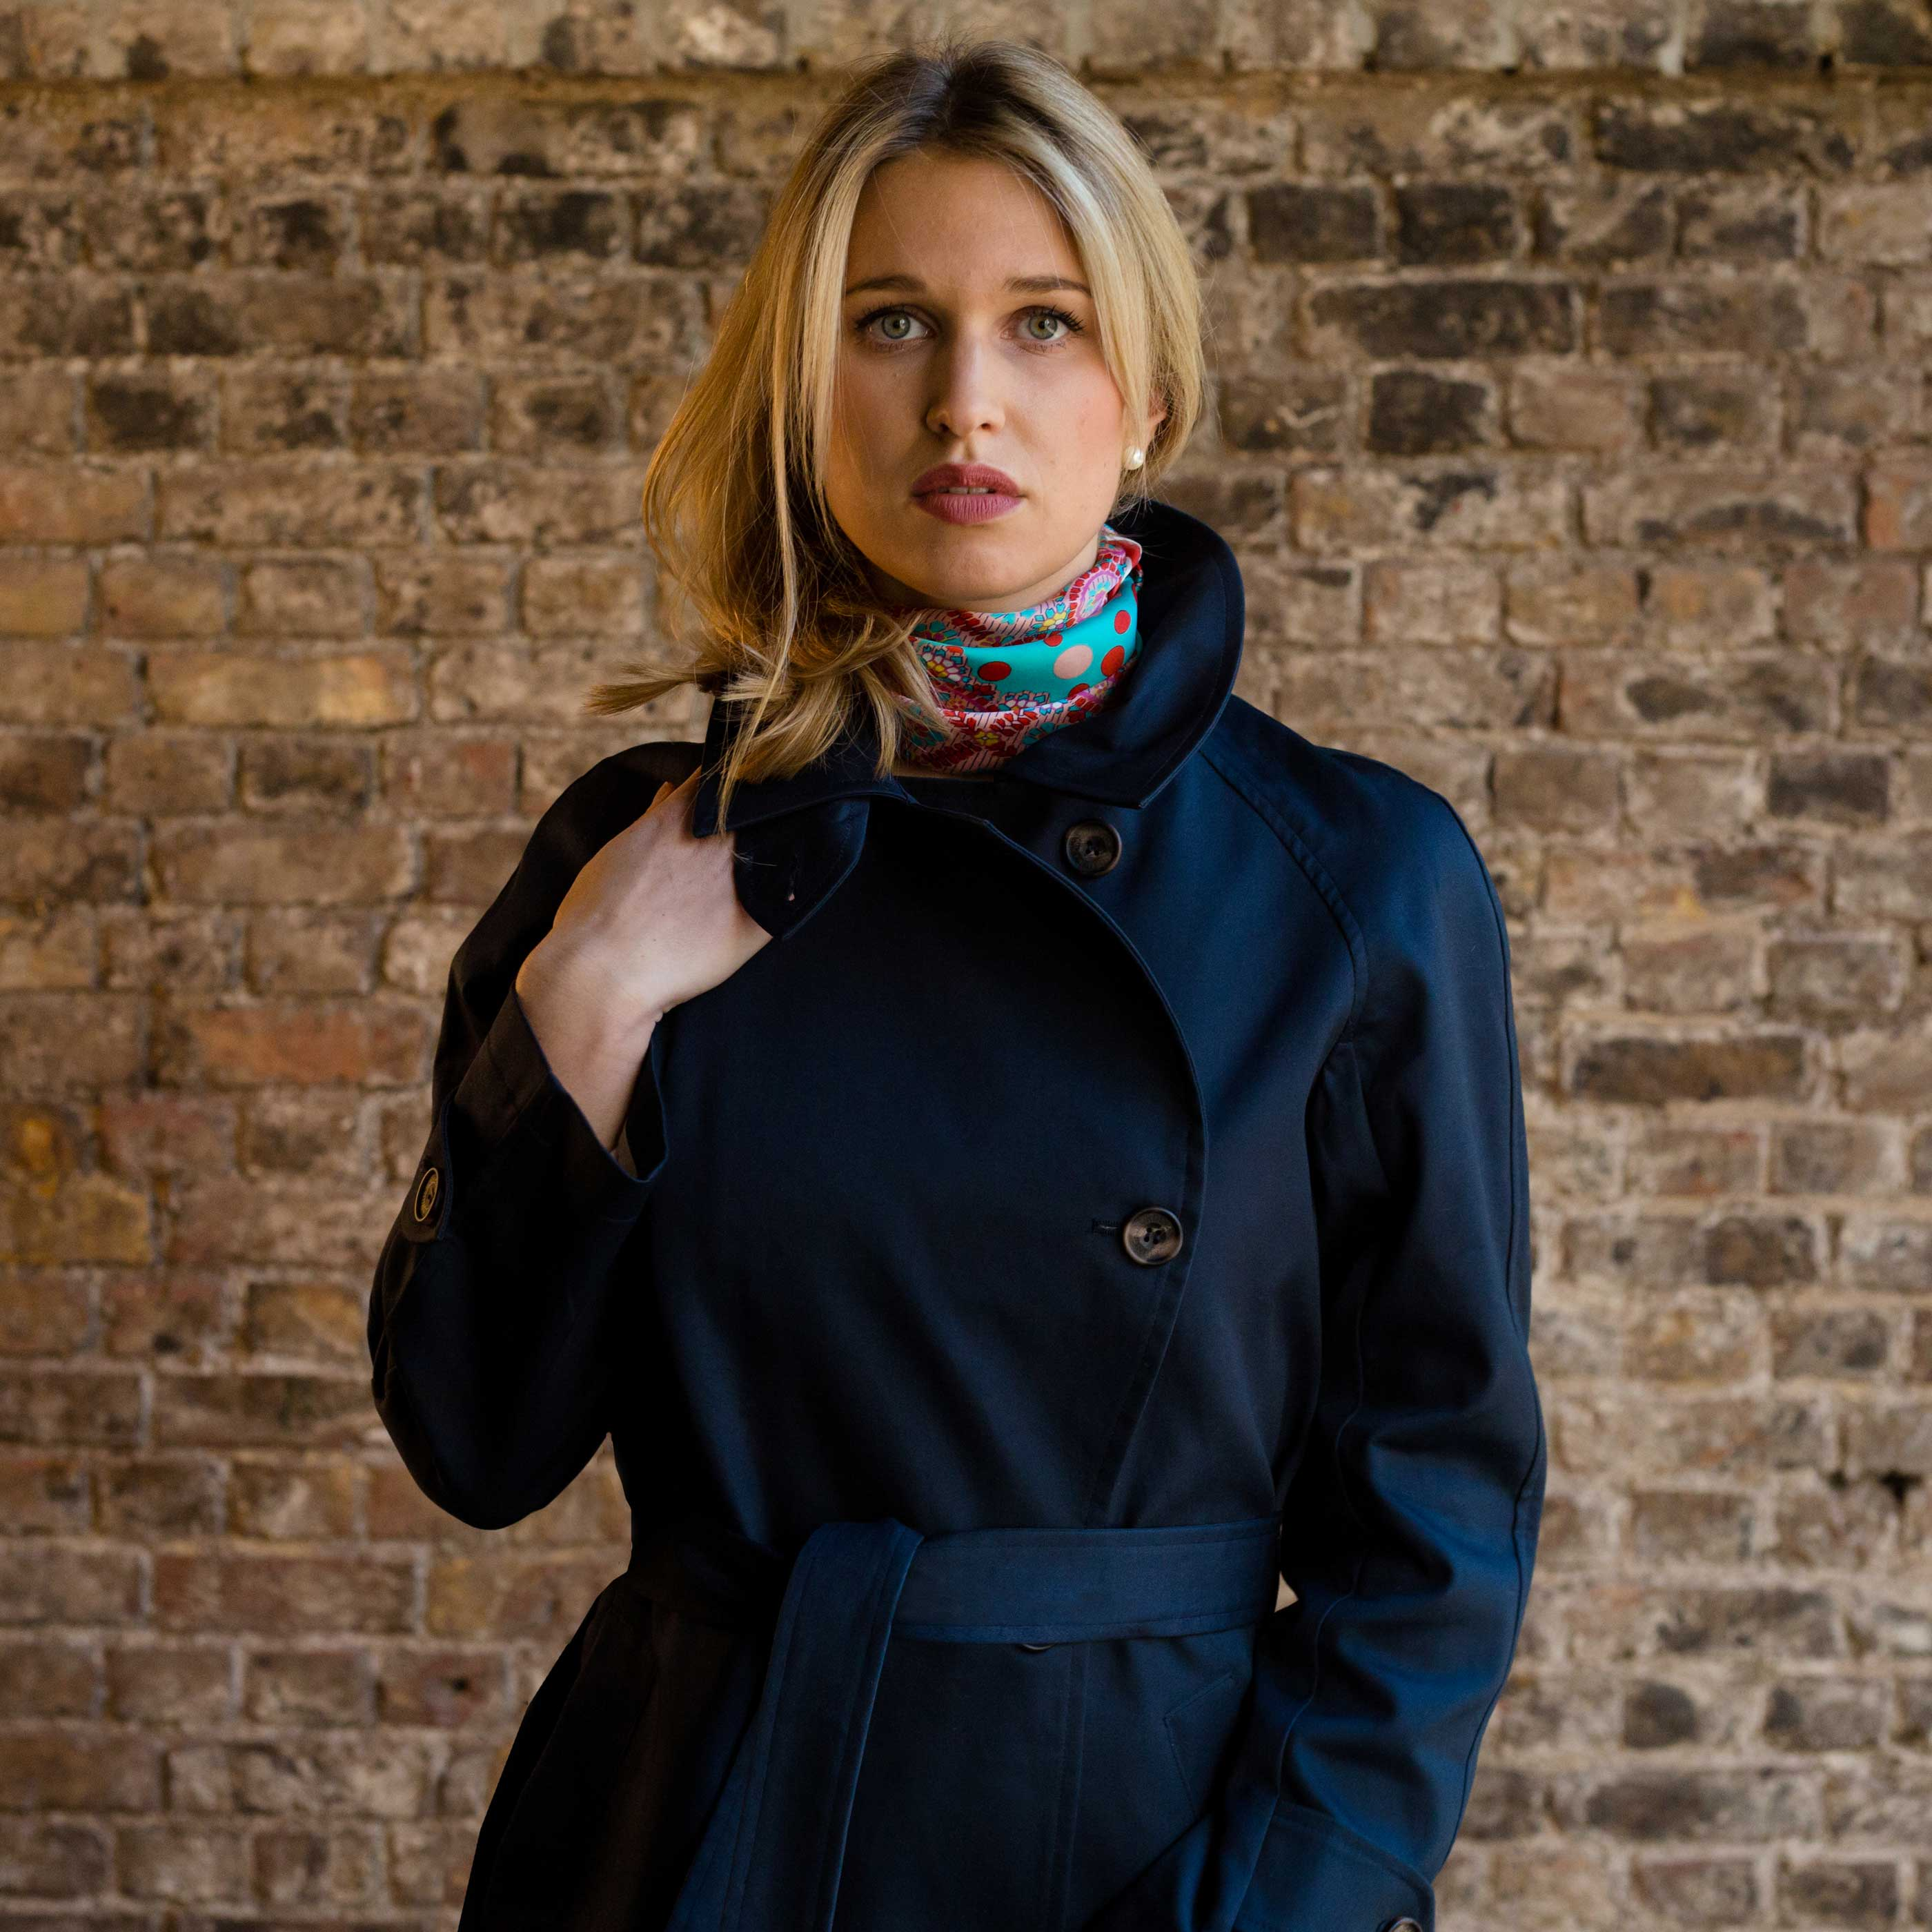 The Trench Coat: an icon of British style since 1850